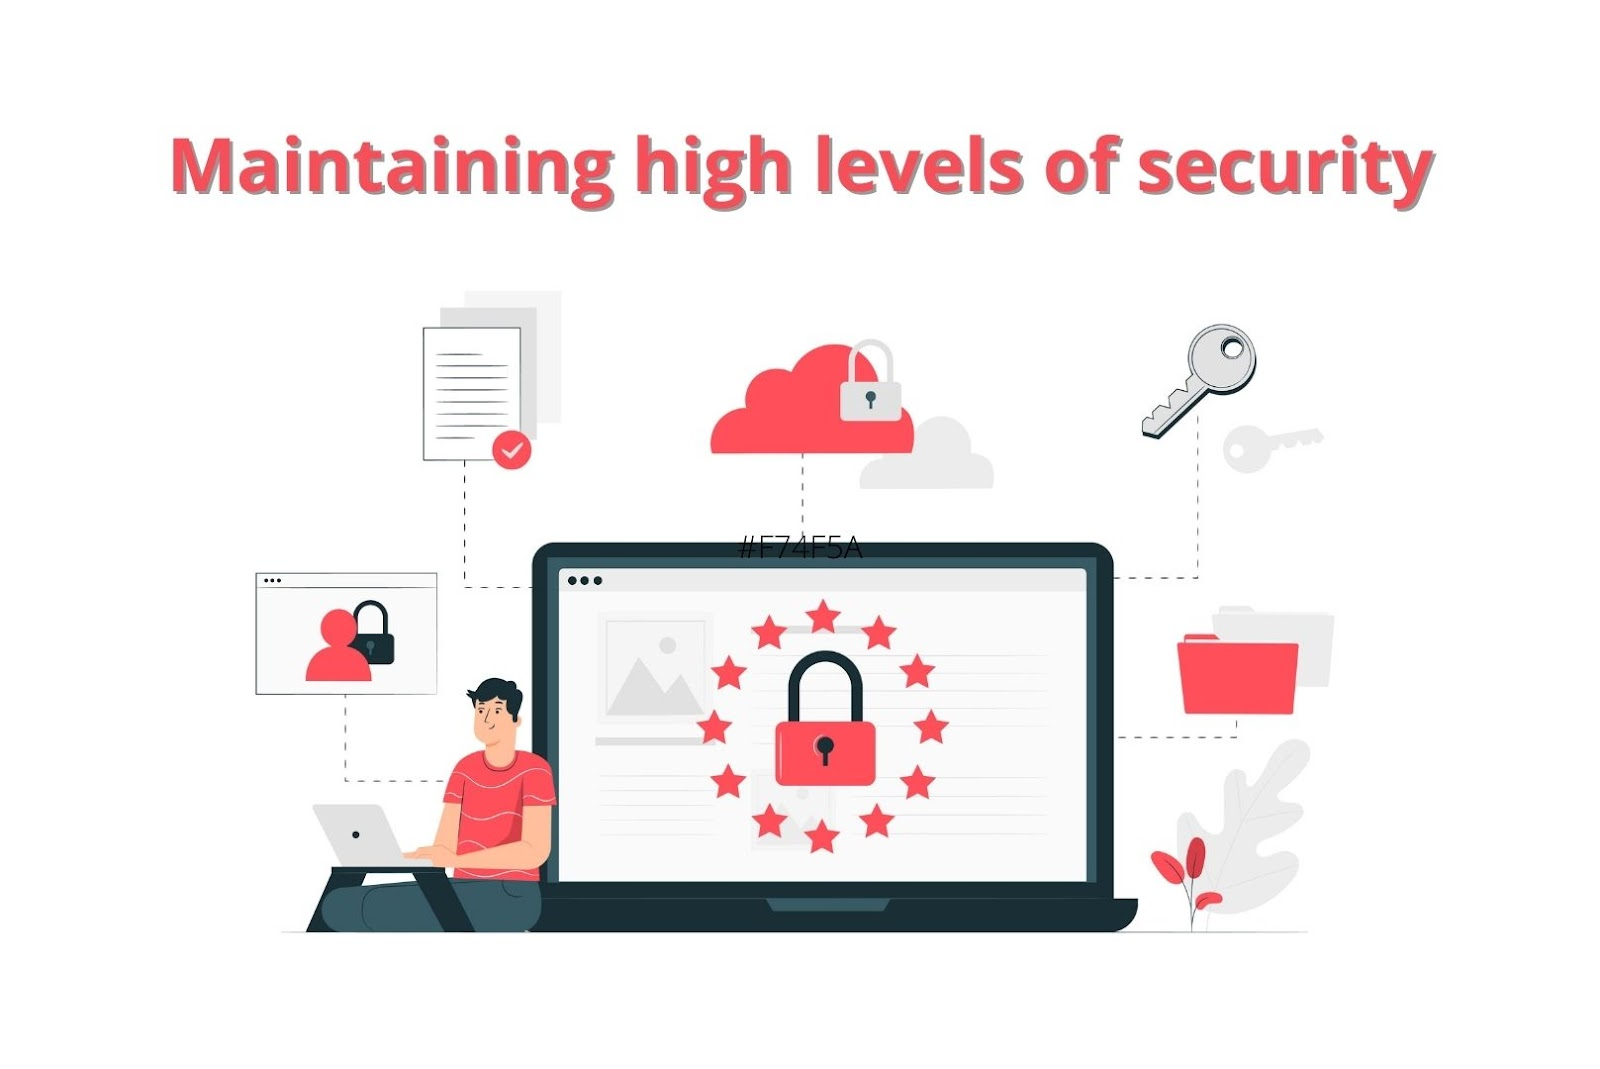 Maintaining high levels of security